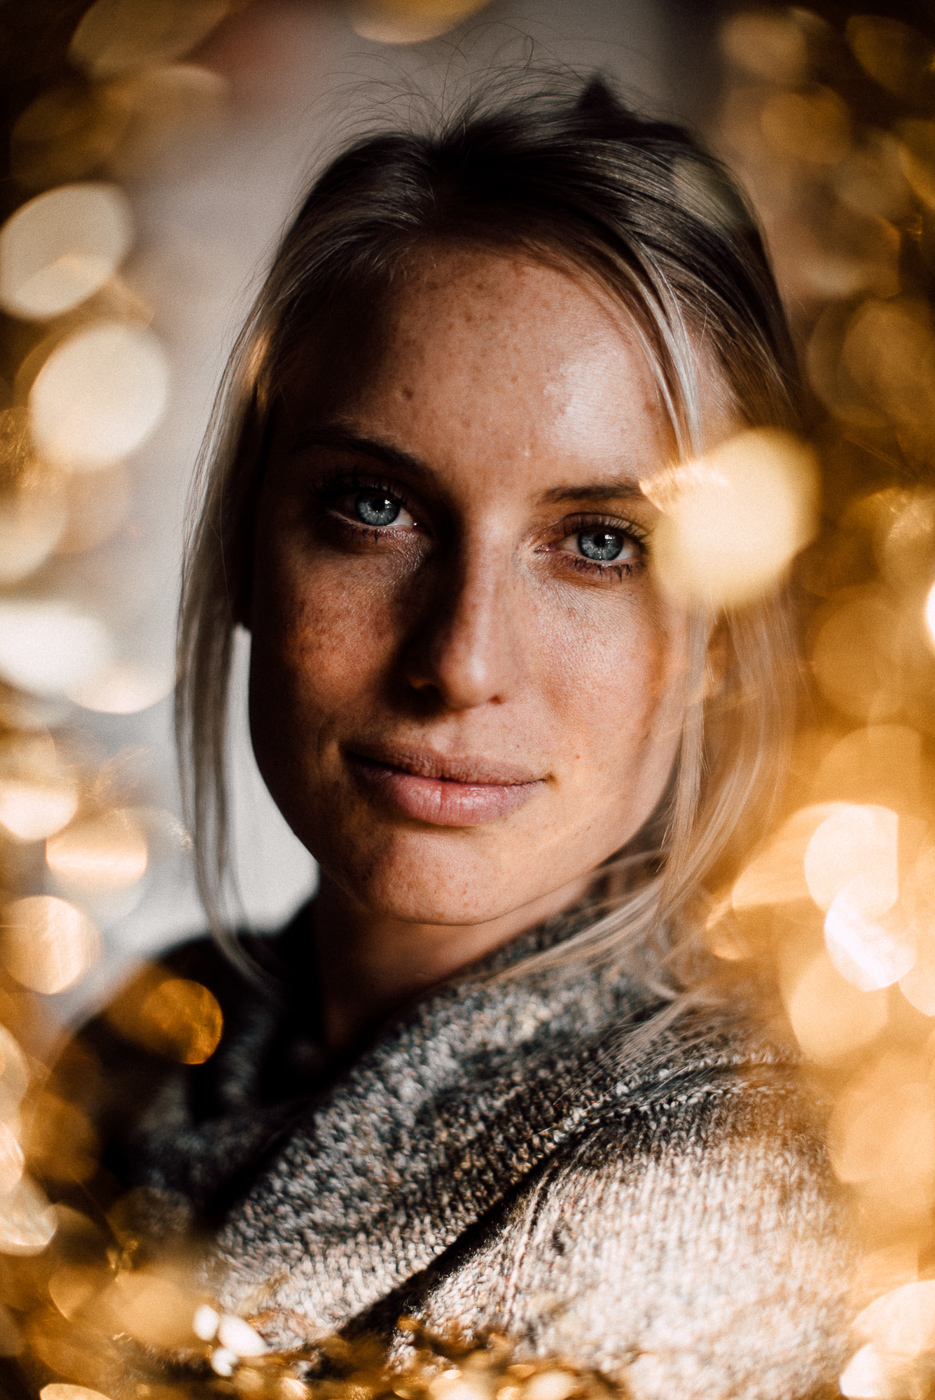 PHOCO Best of 2018 Photograph Fort Collins-54 Portrait Bokeh Gold Christmas Courtney Cyr.jpg